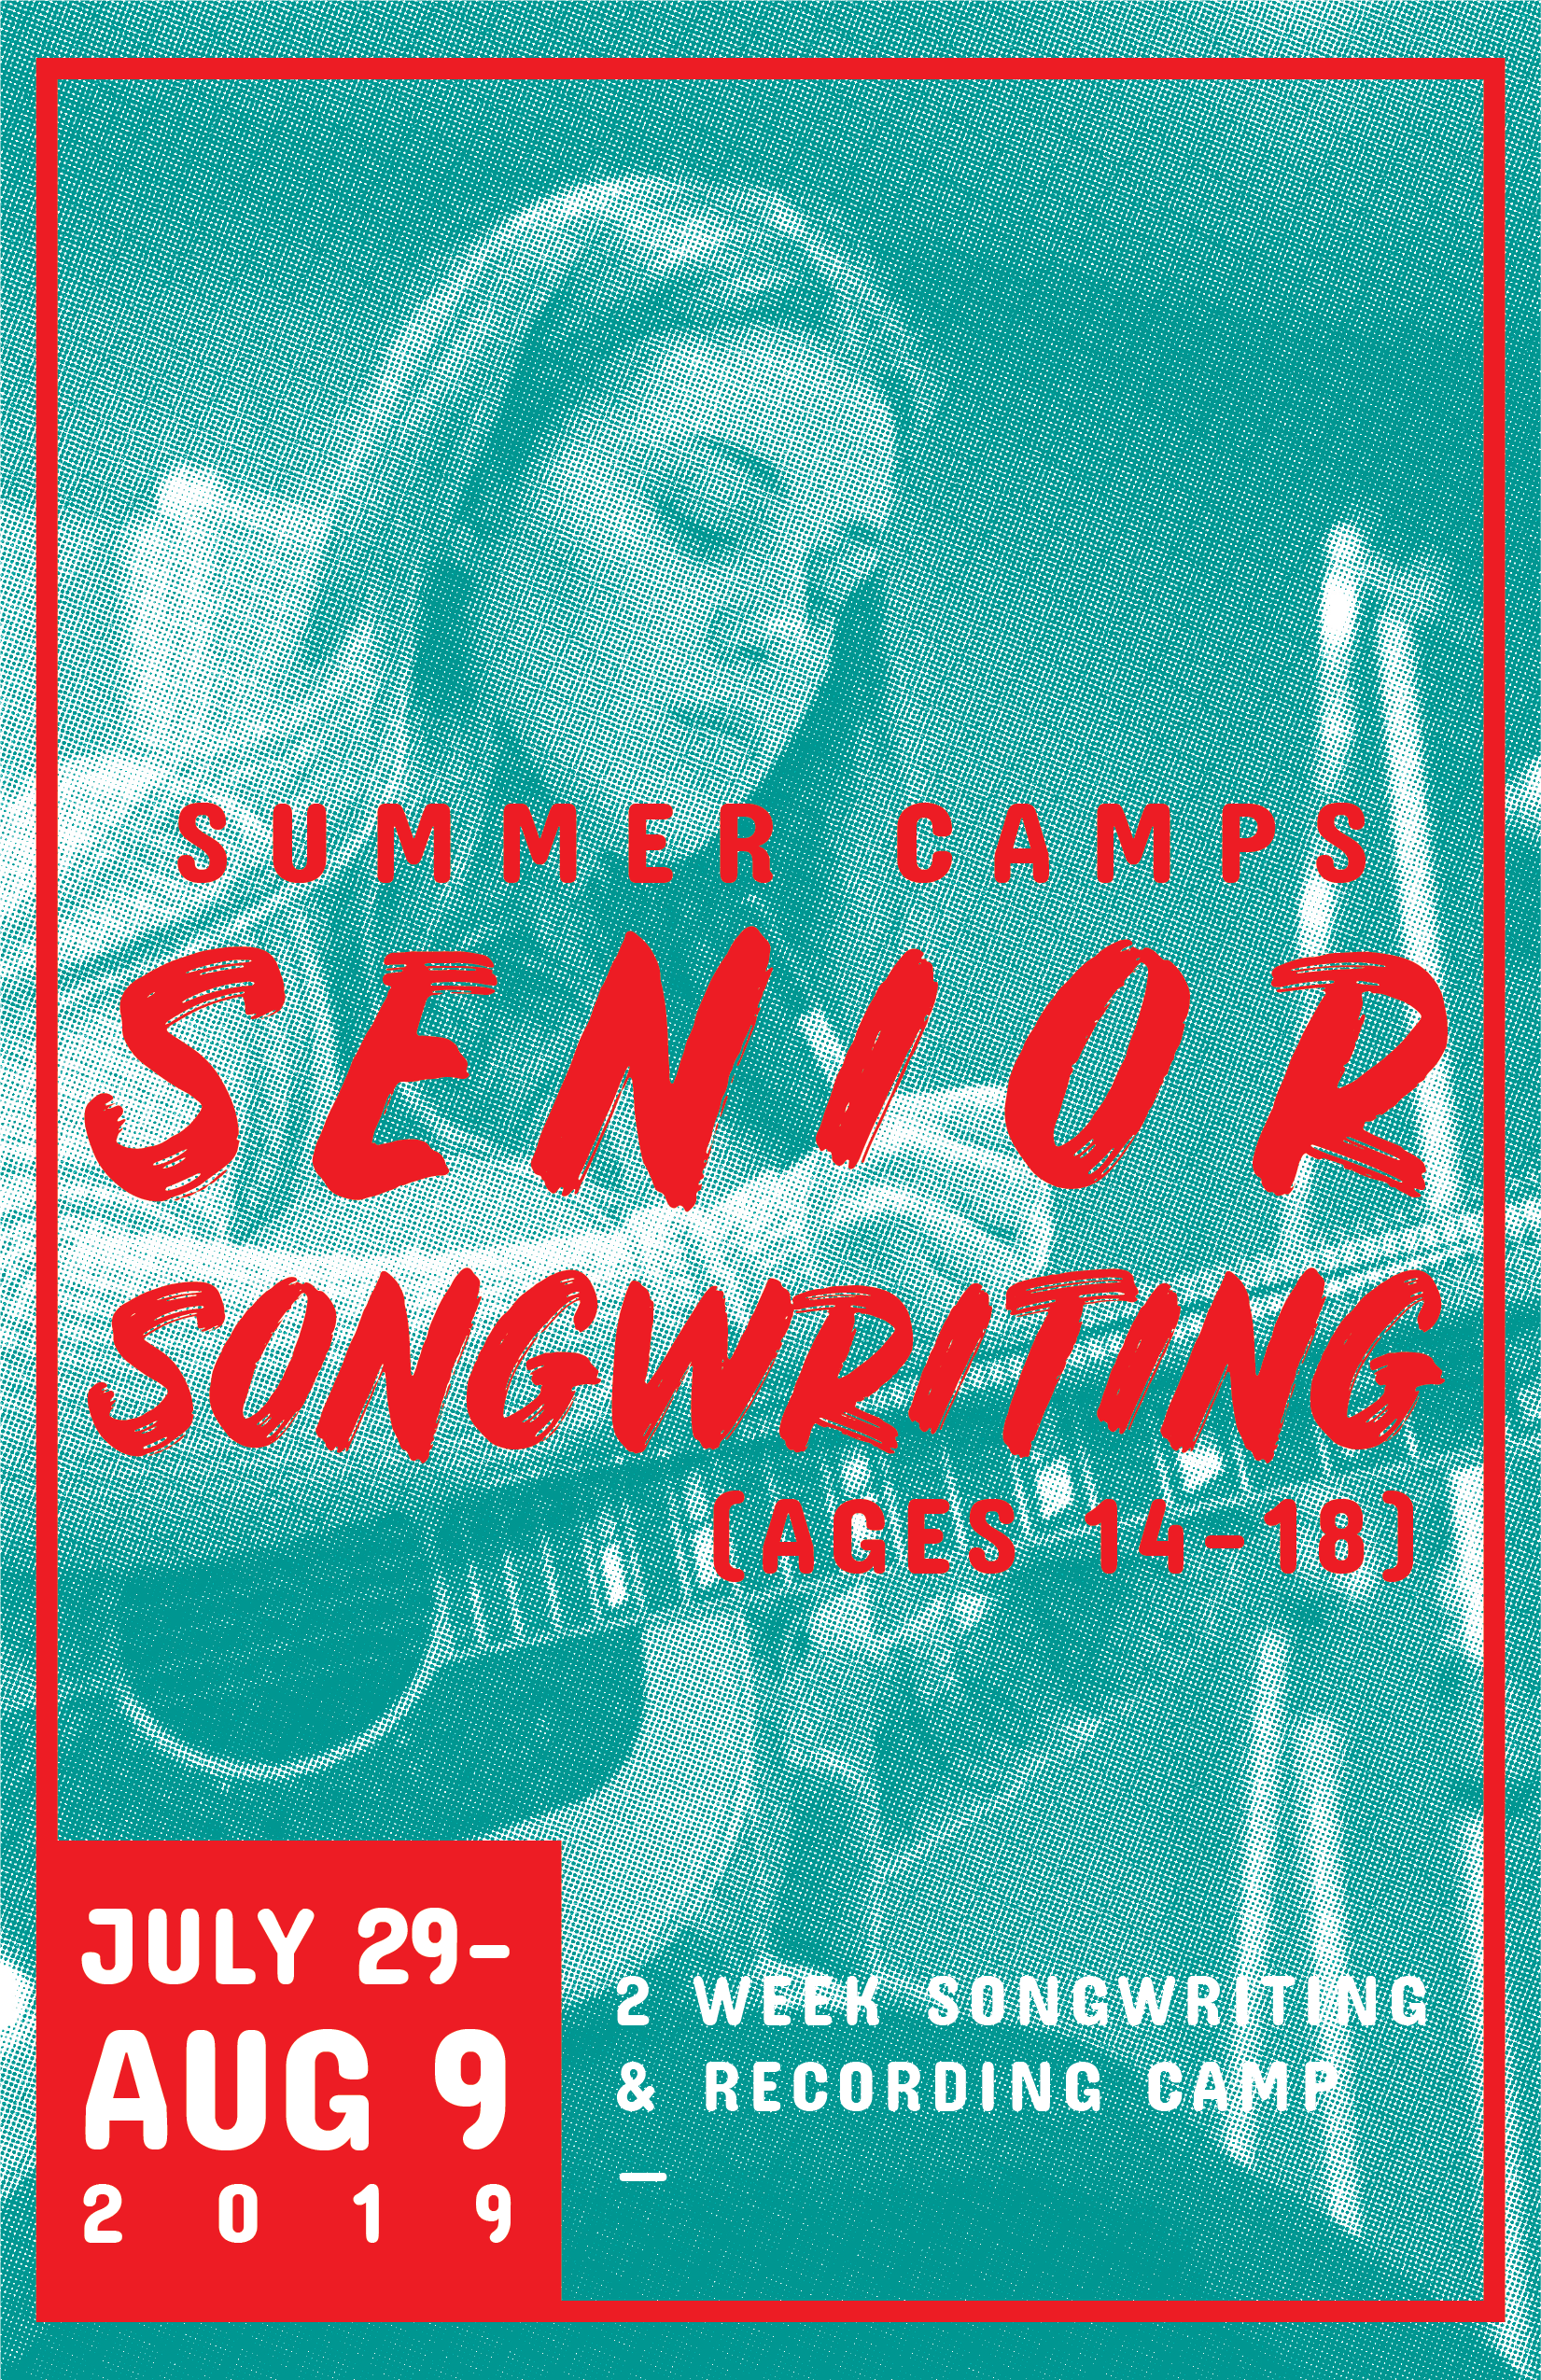 Sr Songwriting - July 29 - Aug. 9th (2 week camp) | (ages 14-18)